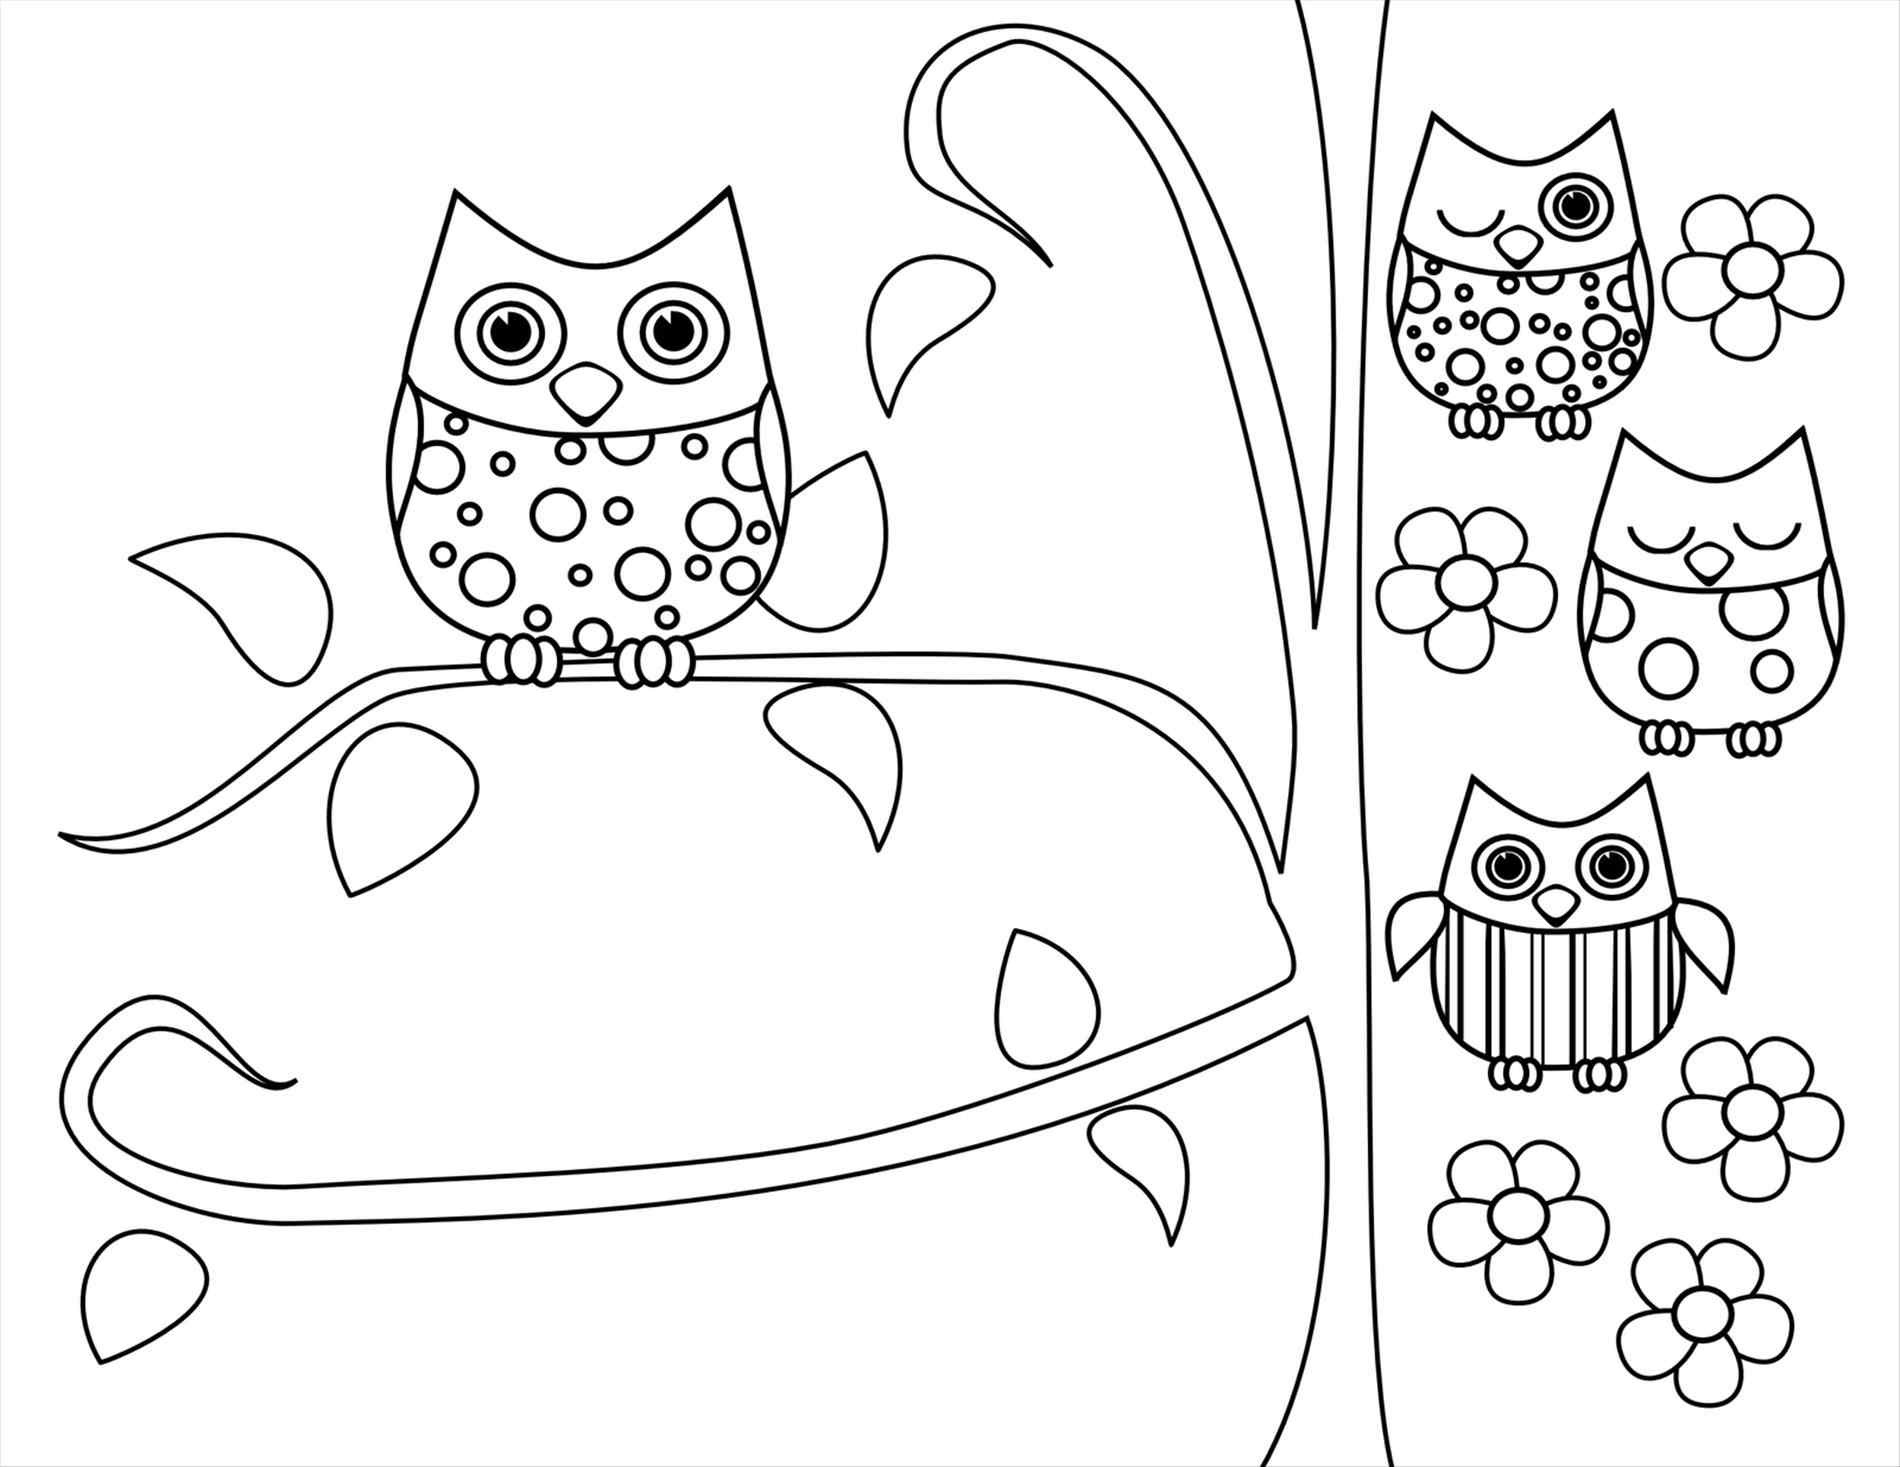 Ipod Coloring Page At Getdrawings